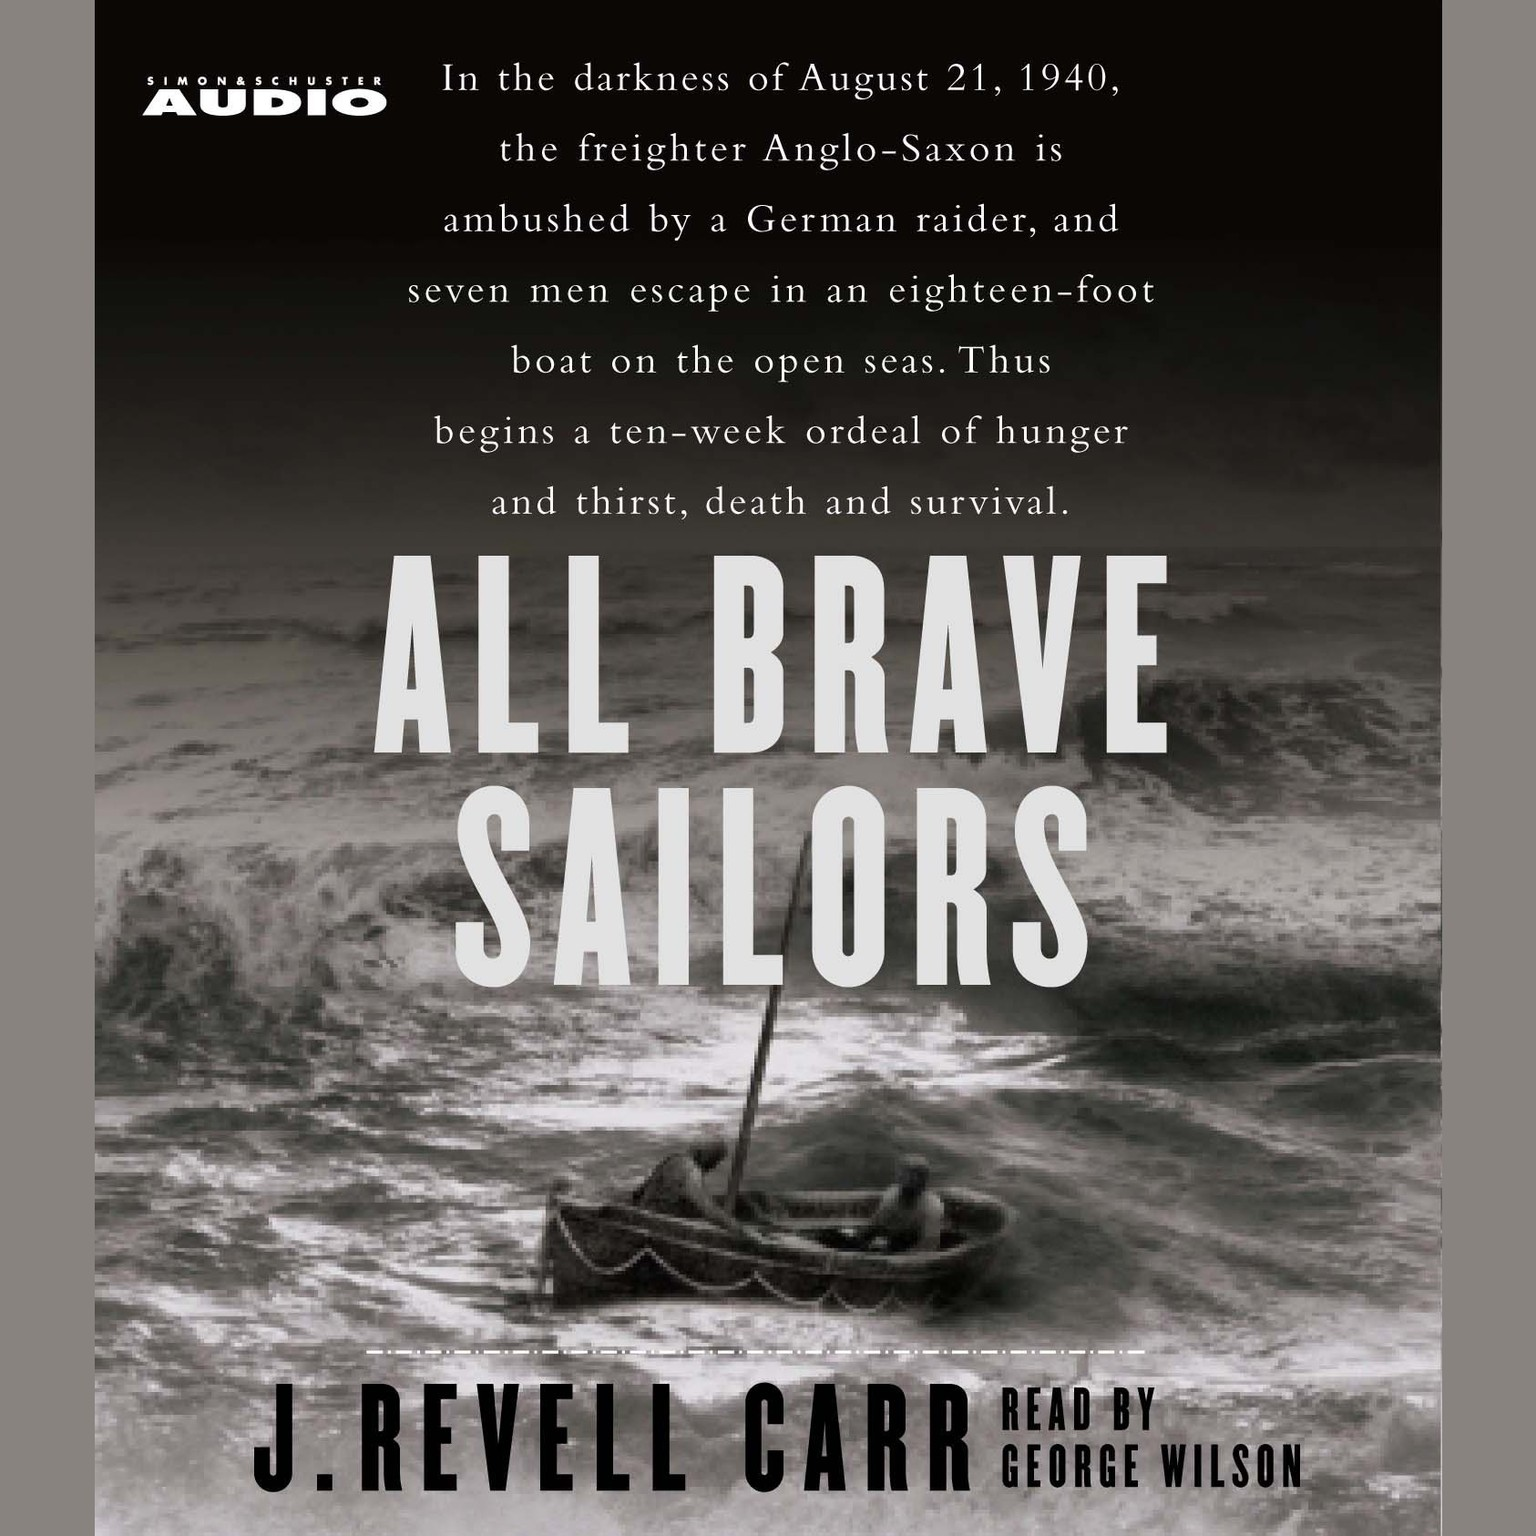 Printable All Brave Sailors: The Sinking of the Anglo Saxon, August 21, 1940 Audiobook Cover Art